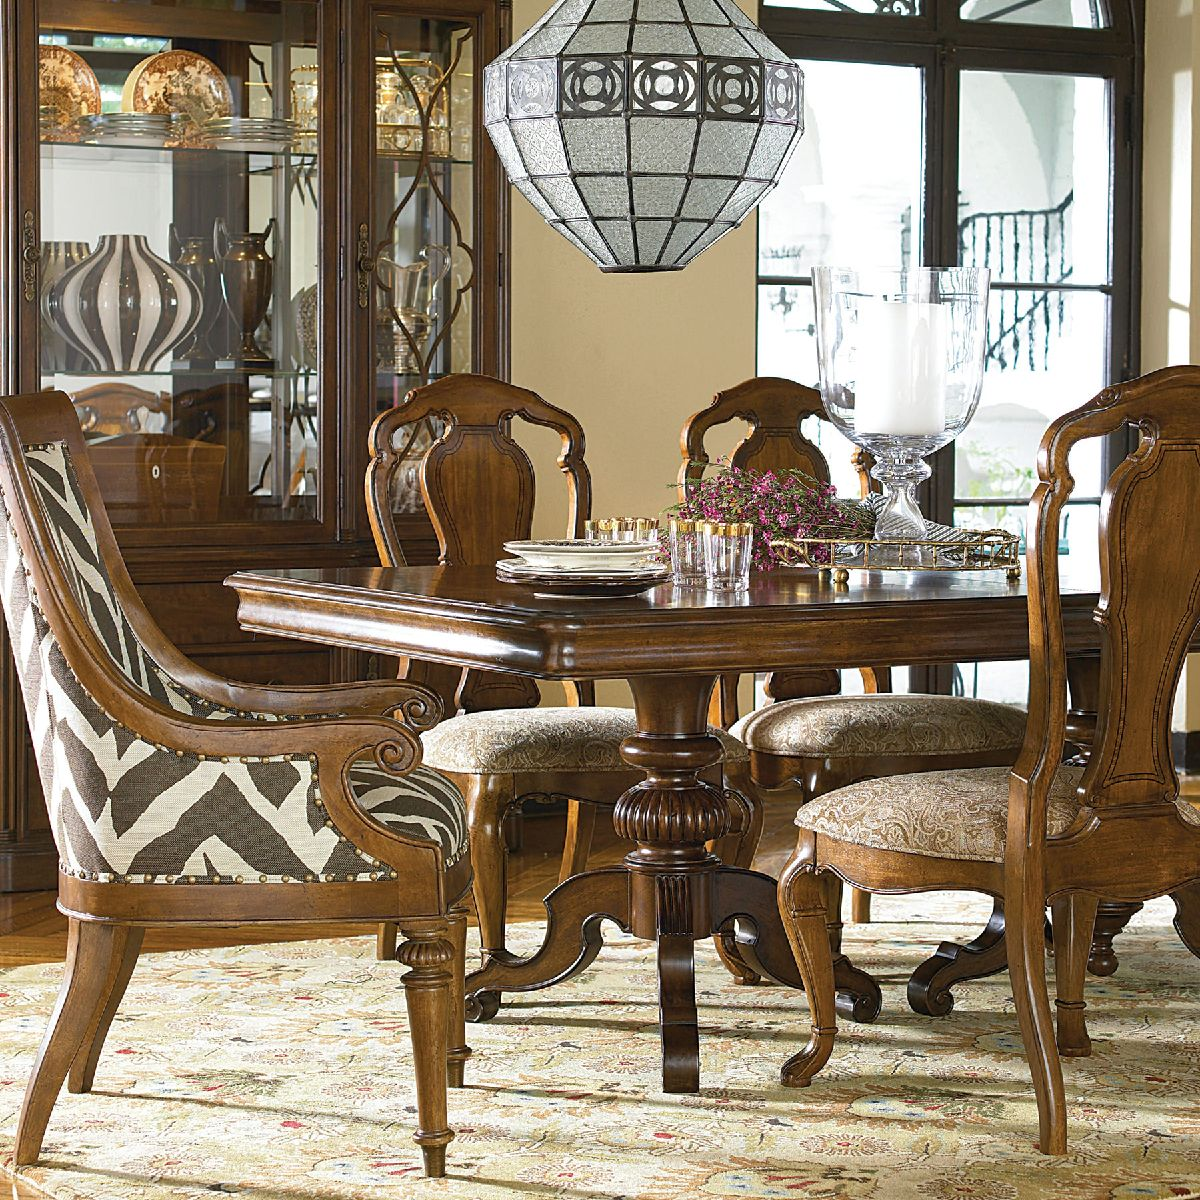 Traditional Decorating With An Exotic Twist; The Thomasville Ernest Hemingway  Collection Shows Off Your Adventurous